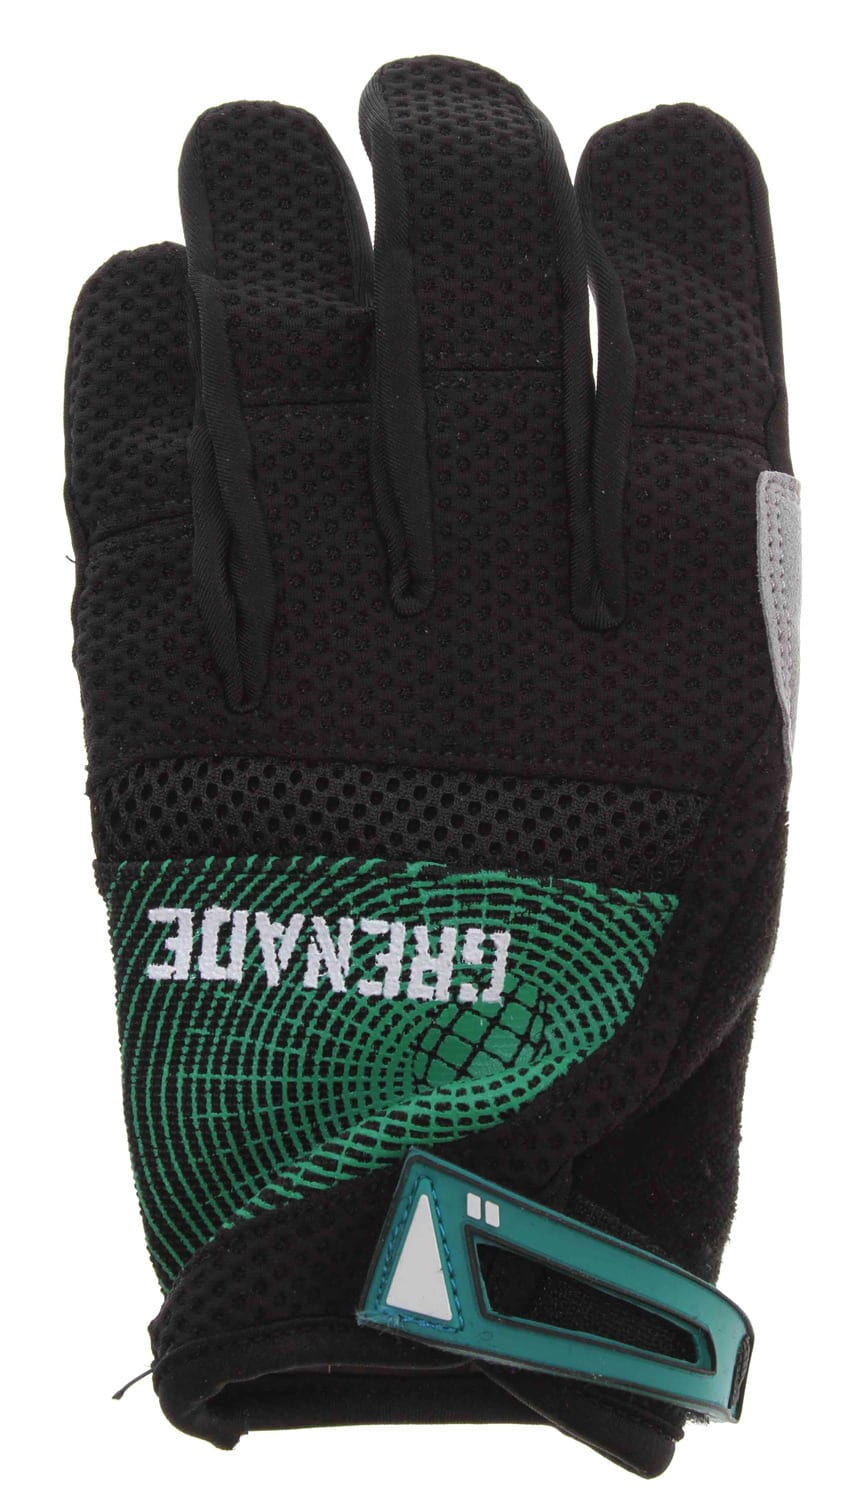 Shop for Grenade Primo 2 Bike Gloves Teal - Men's